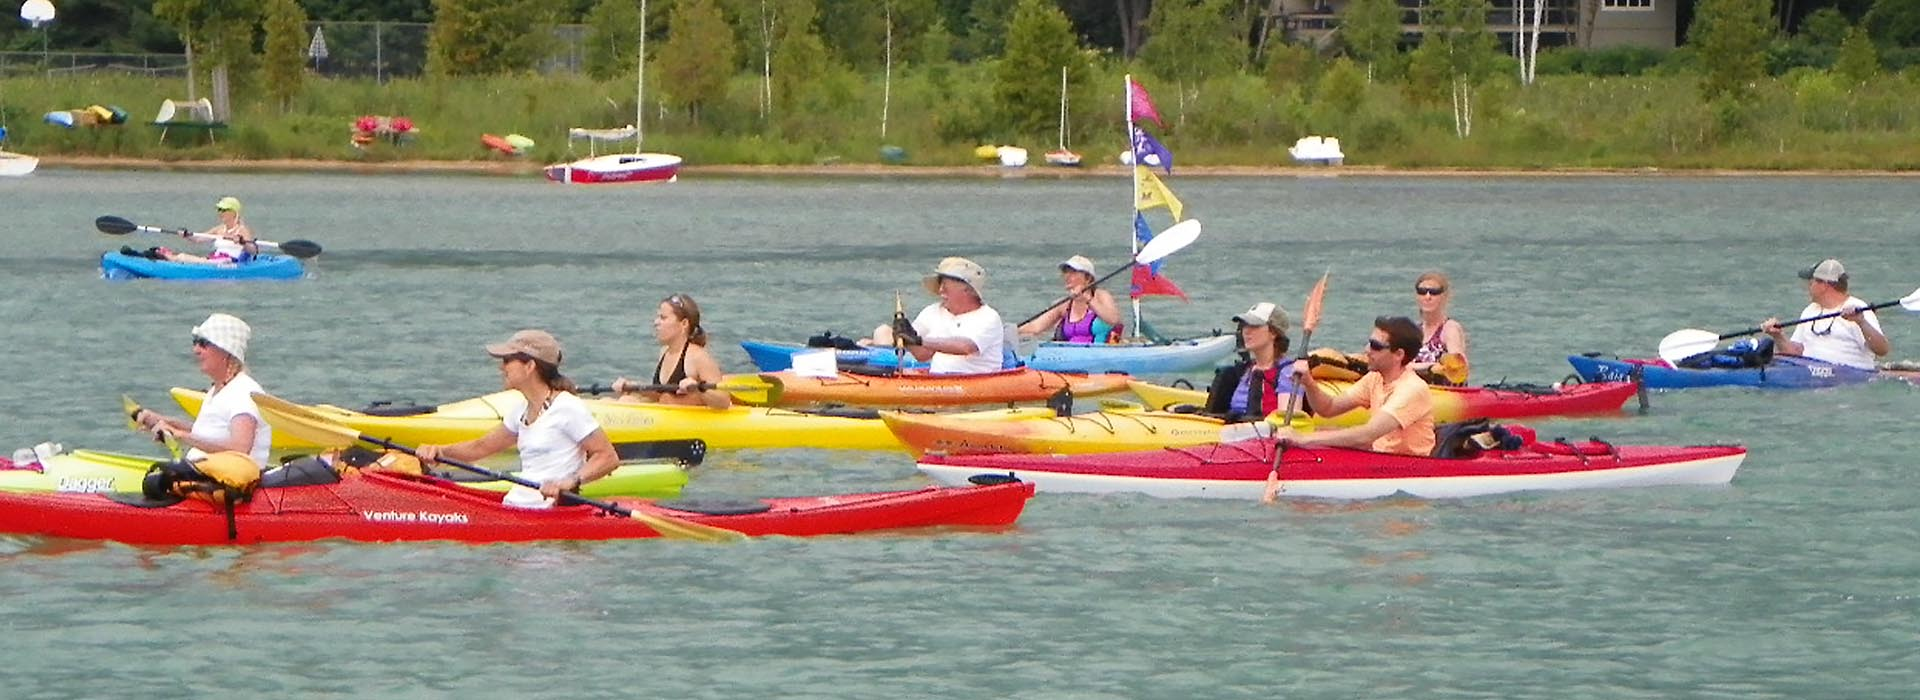 Kayak Register Online Kayak For A Cause